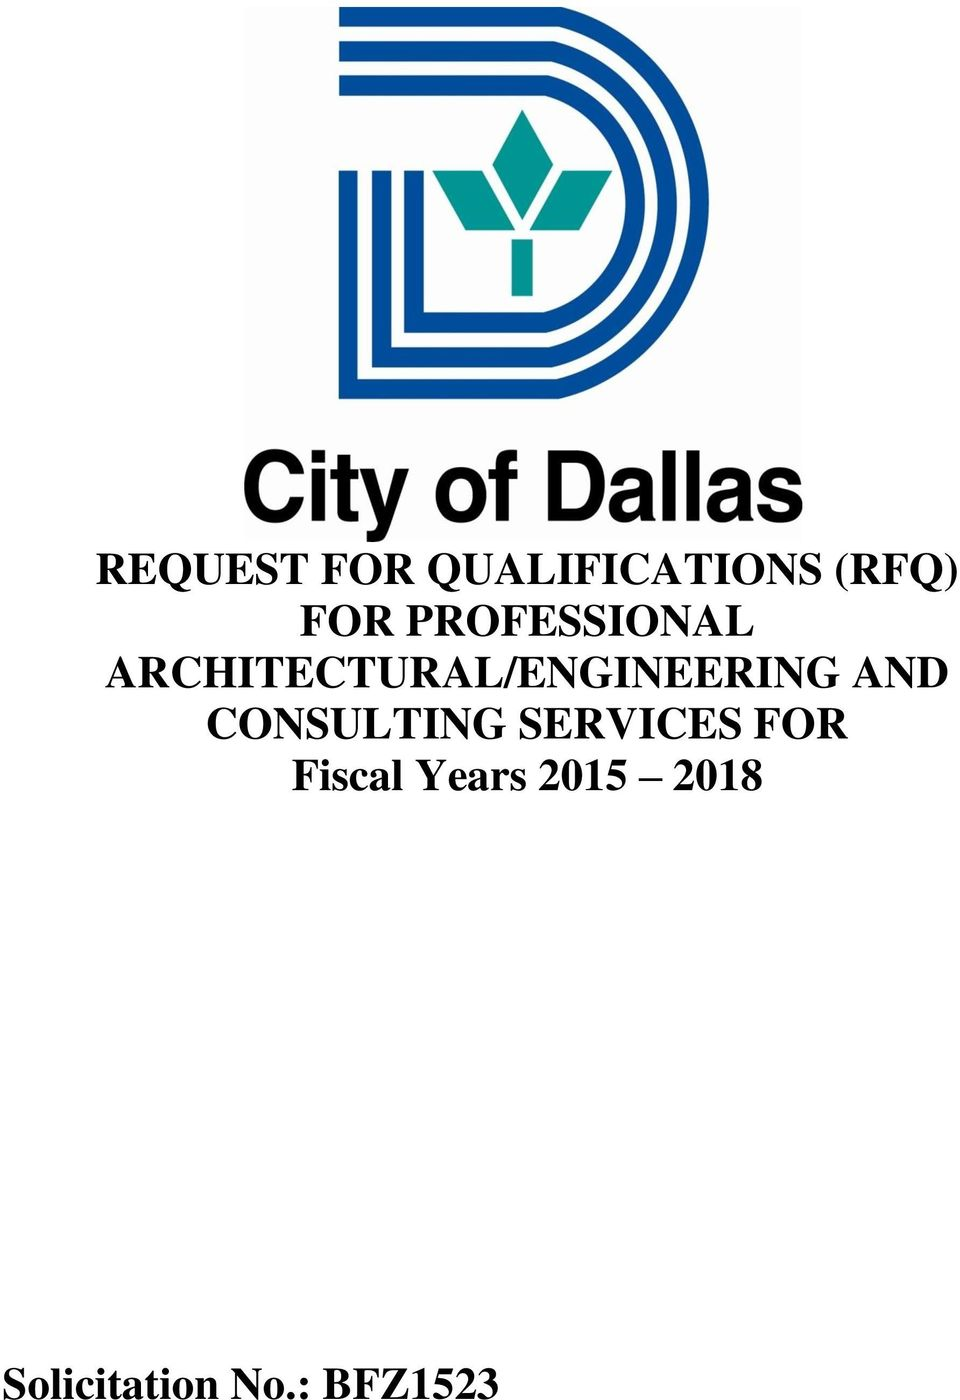 ARCHITECTURAL/ENGINEERING AND